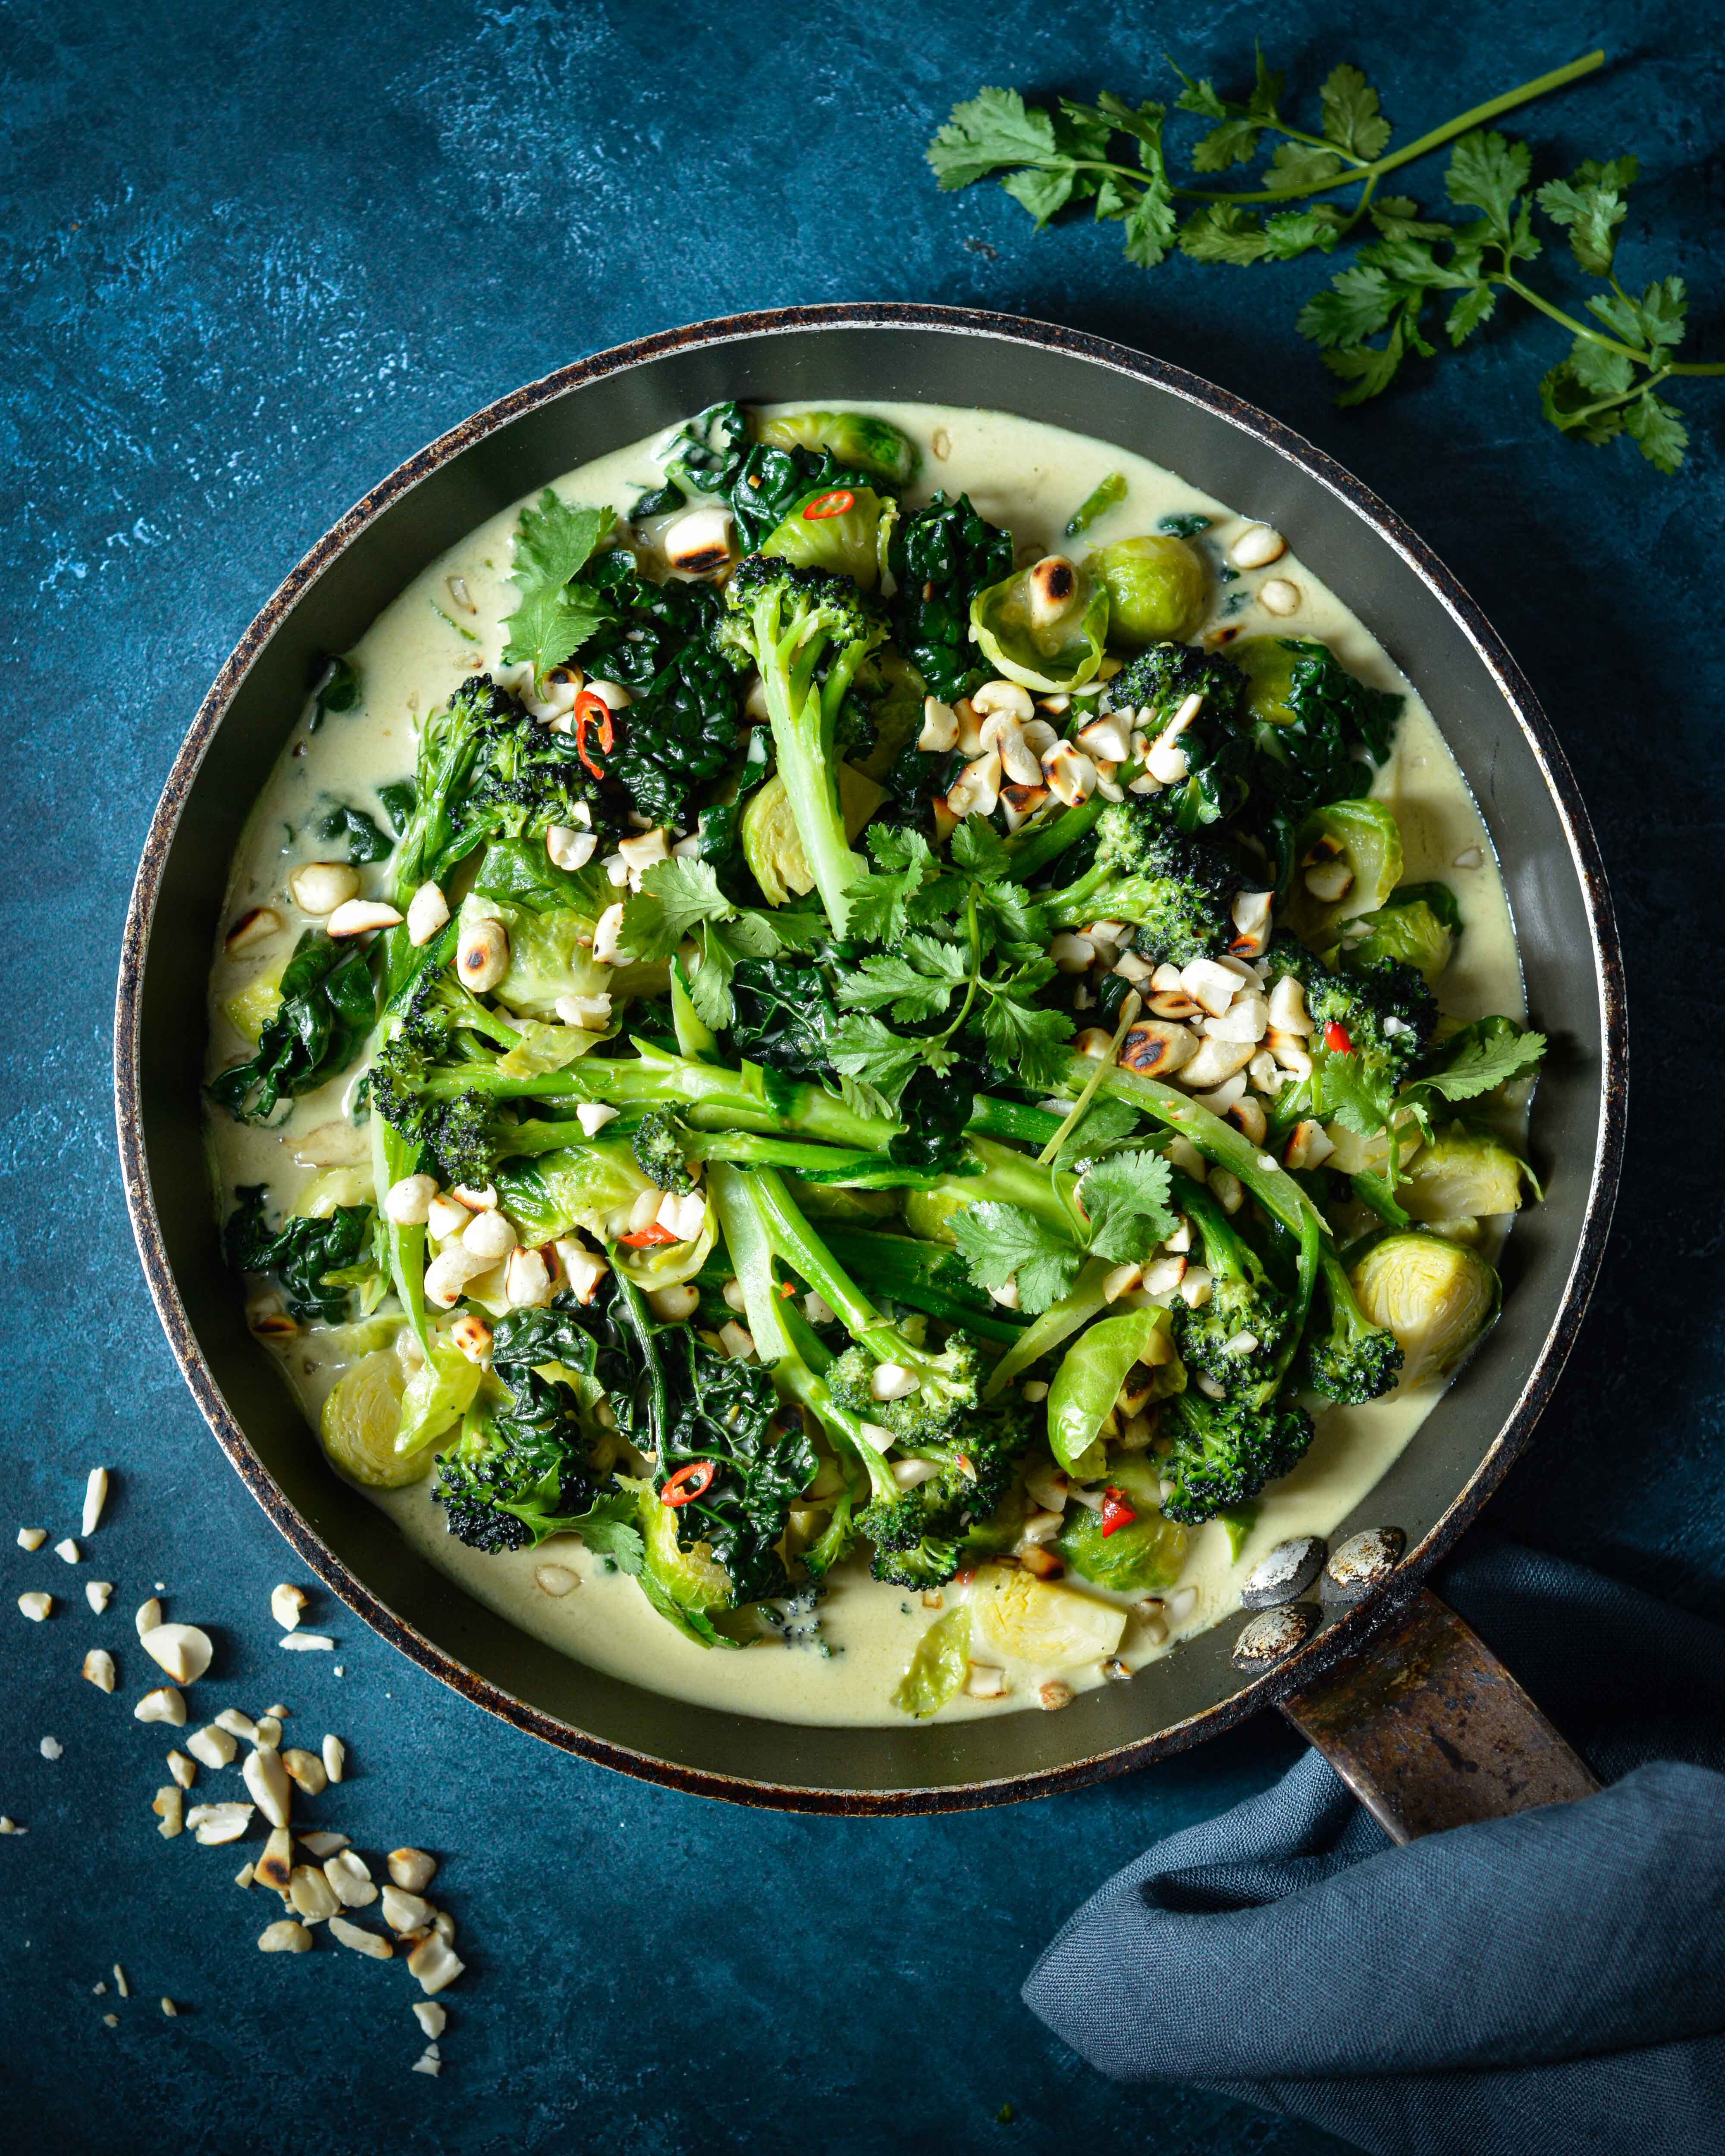 Vegan Thai Green Curry recipe - so easy and quick!